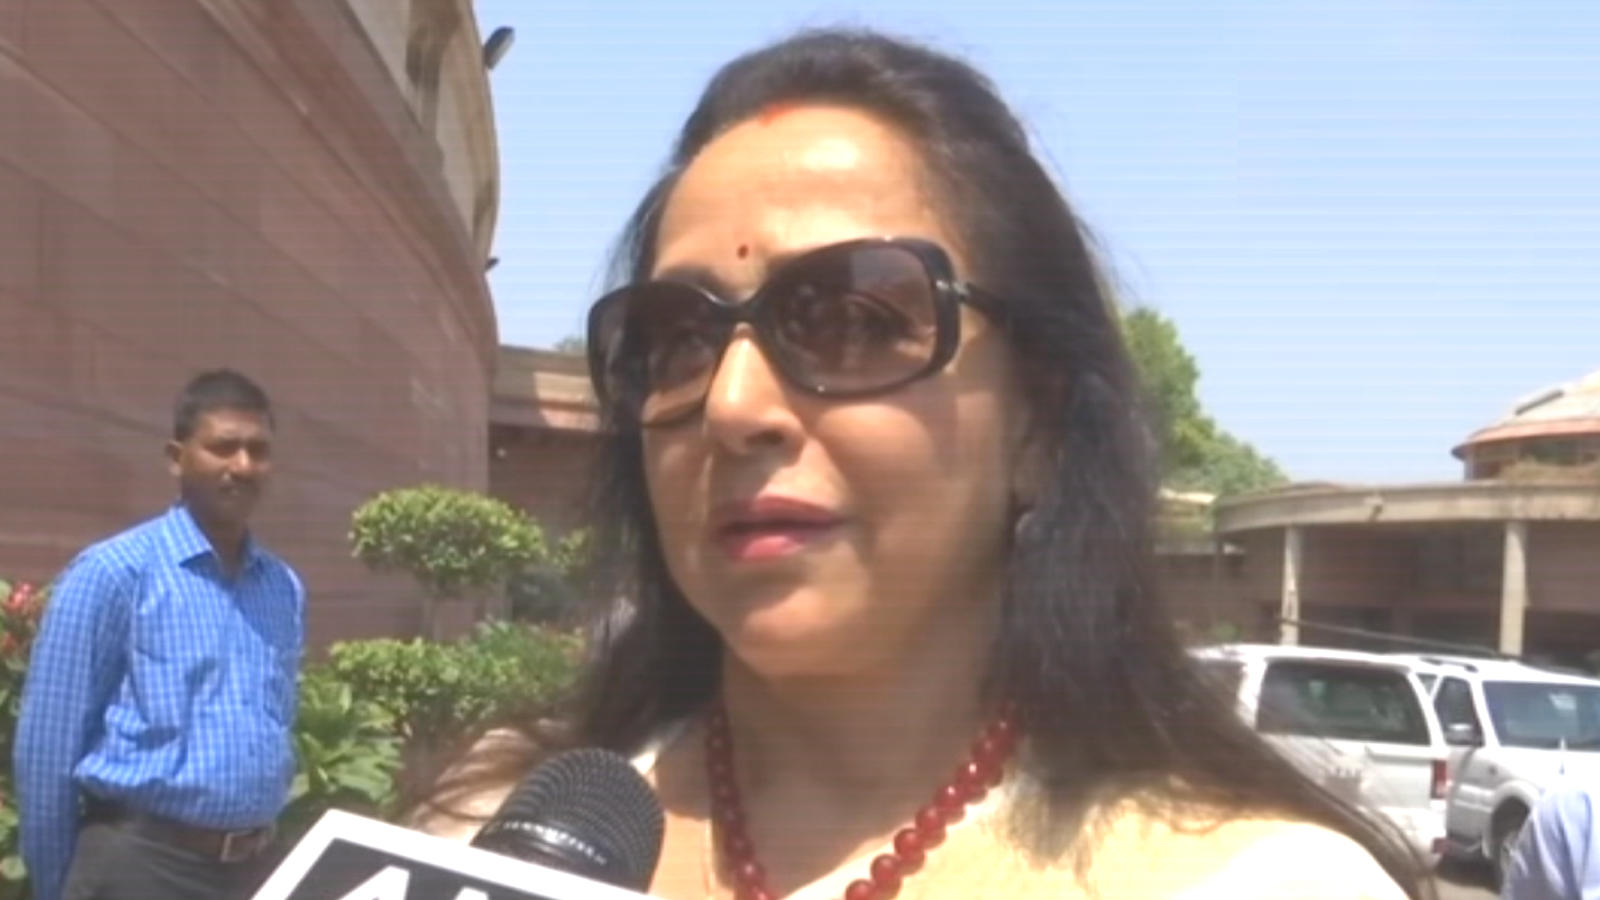 Everyone should do yoga as it helps in mental, physical fitness: Hema Malini